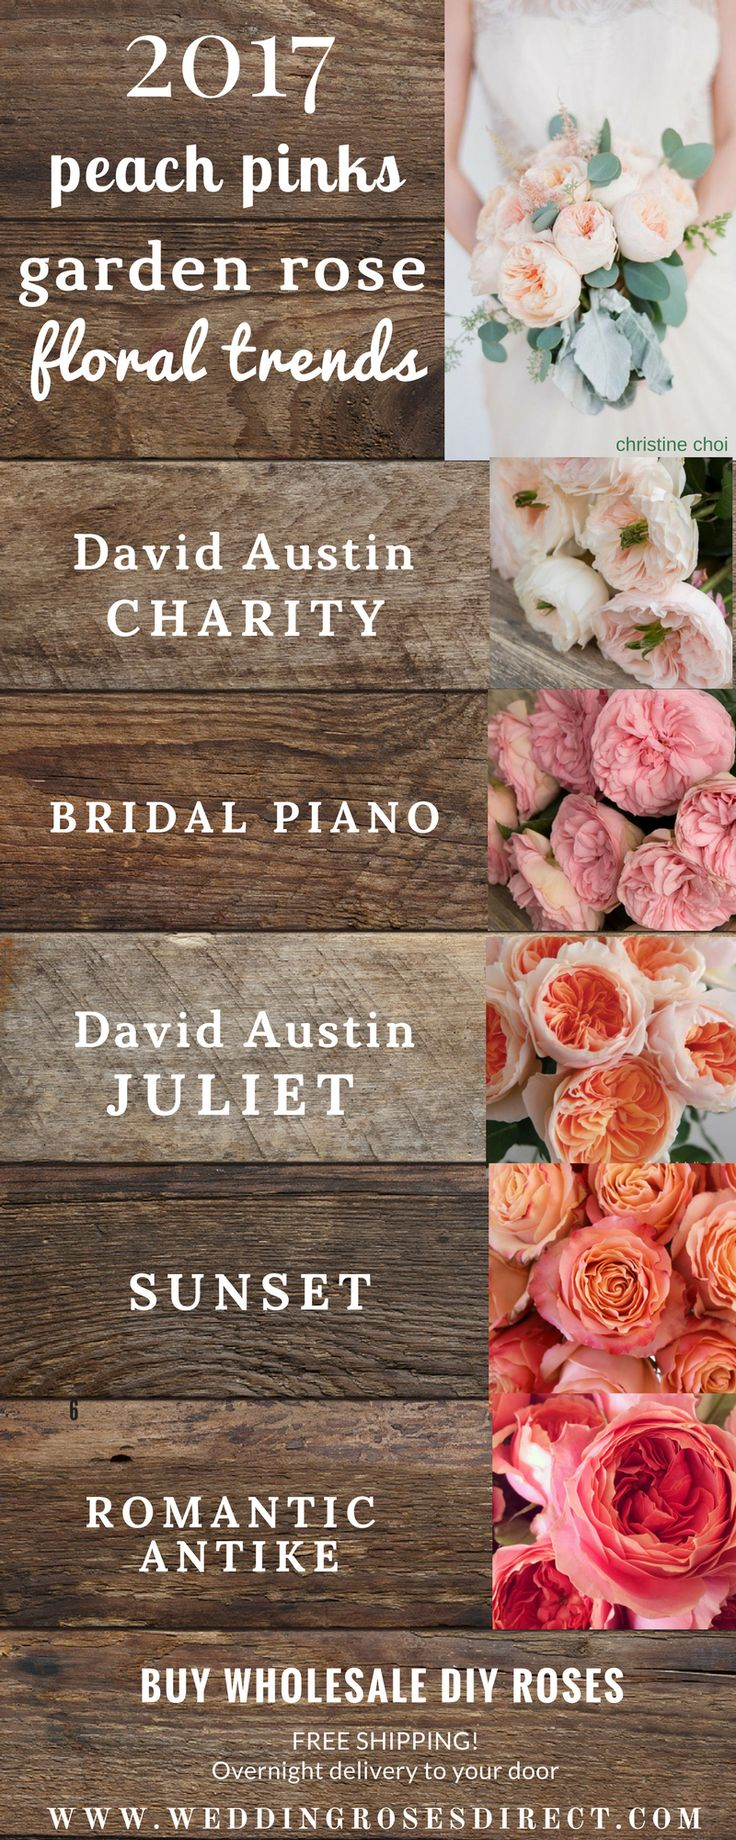 2017 Garden Rose BOUQUET trends! Your  #1 source for DIY Garden Roses! www.weddingrosesdirect.com #gardenrosebouquet #diyflowers #davidaustin  #bouquet #diybouquet #pinkroses #pinkgardenroses